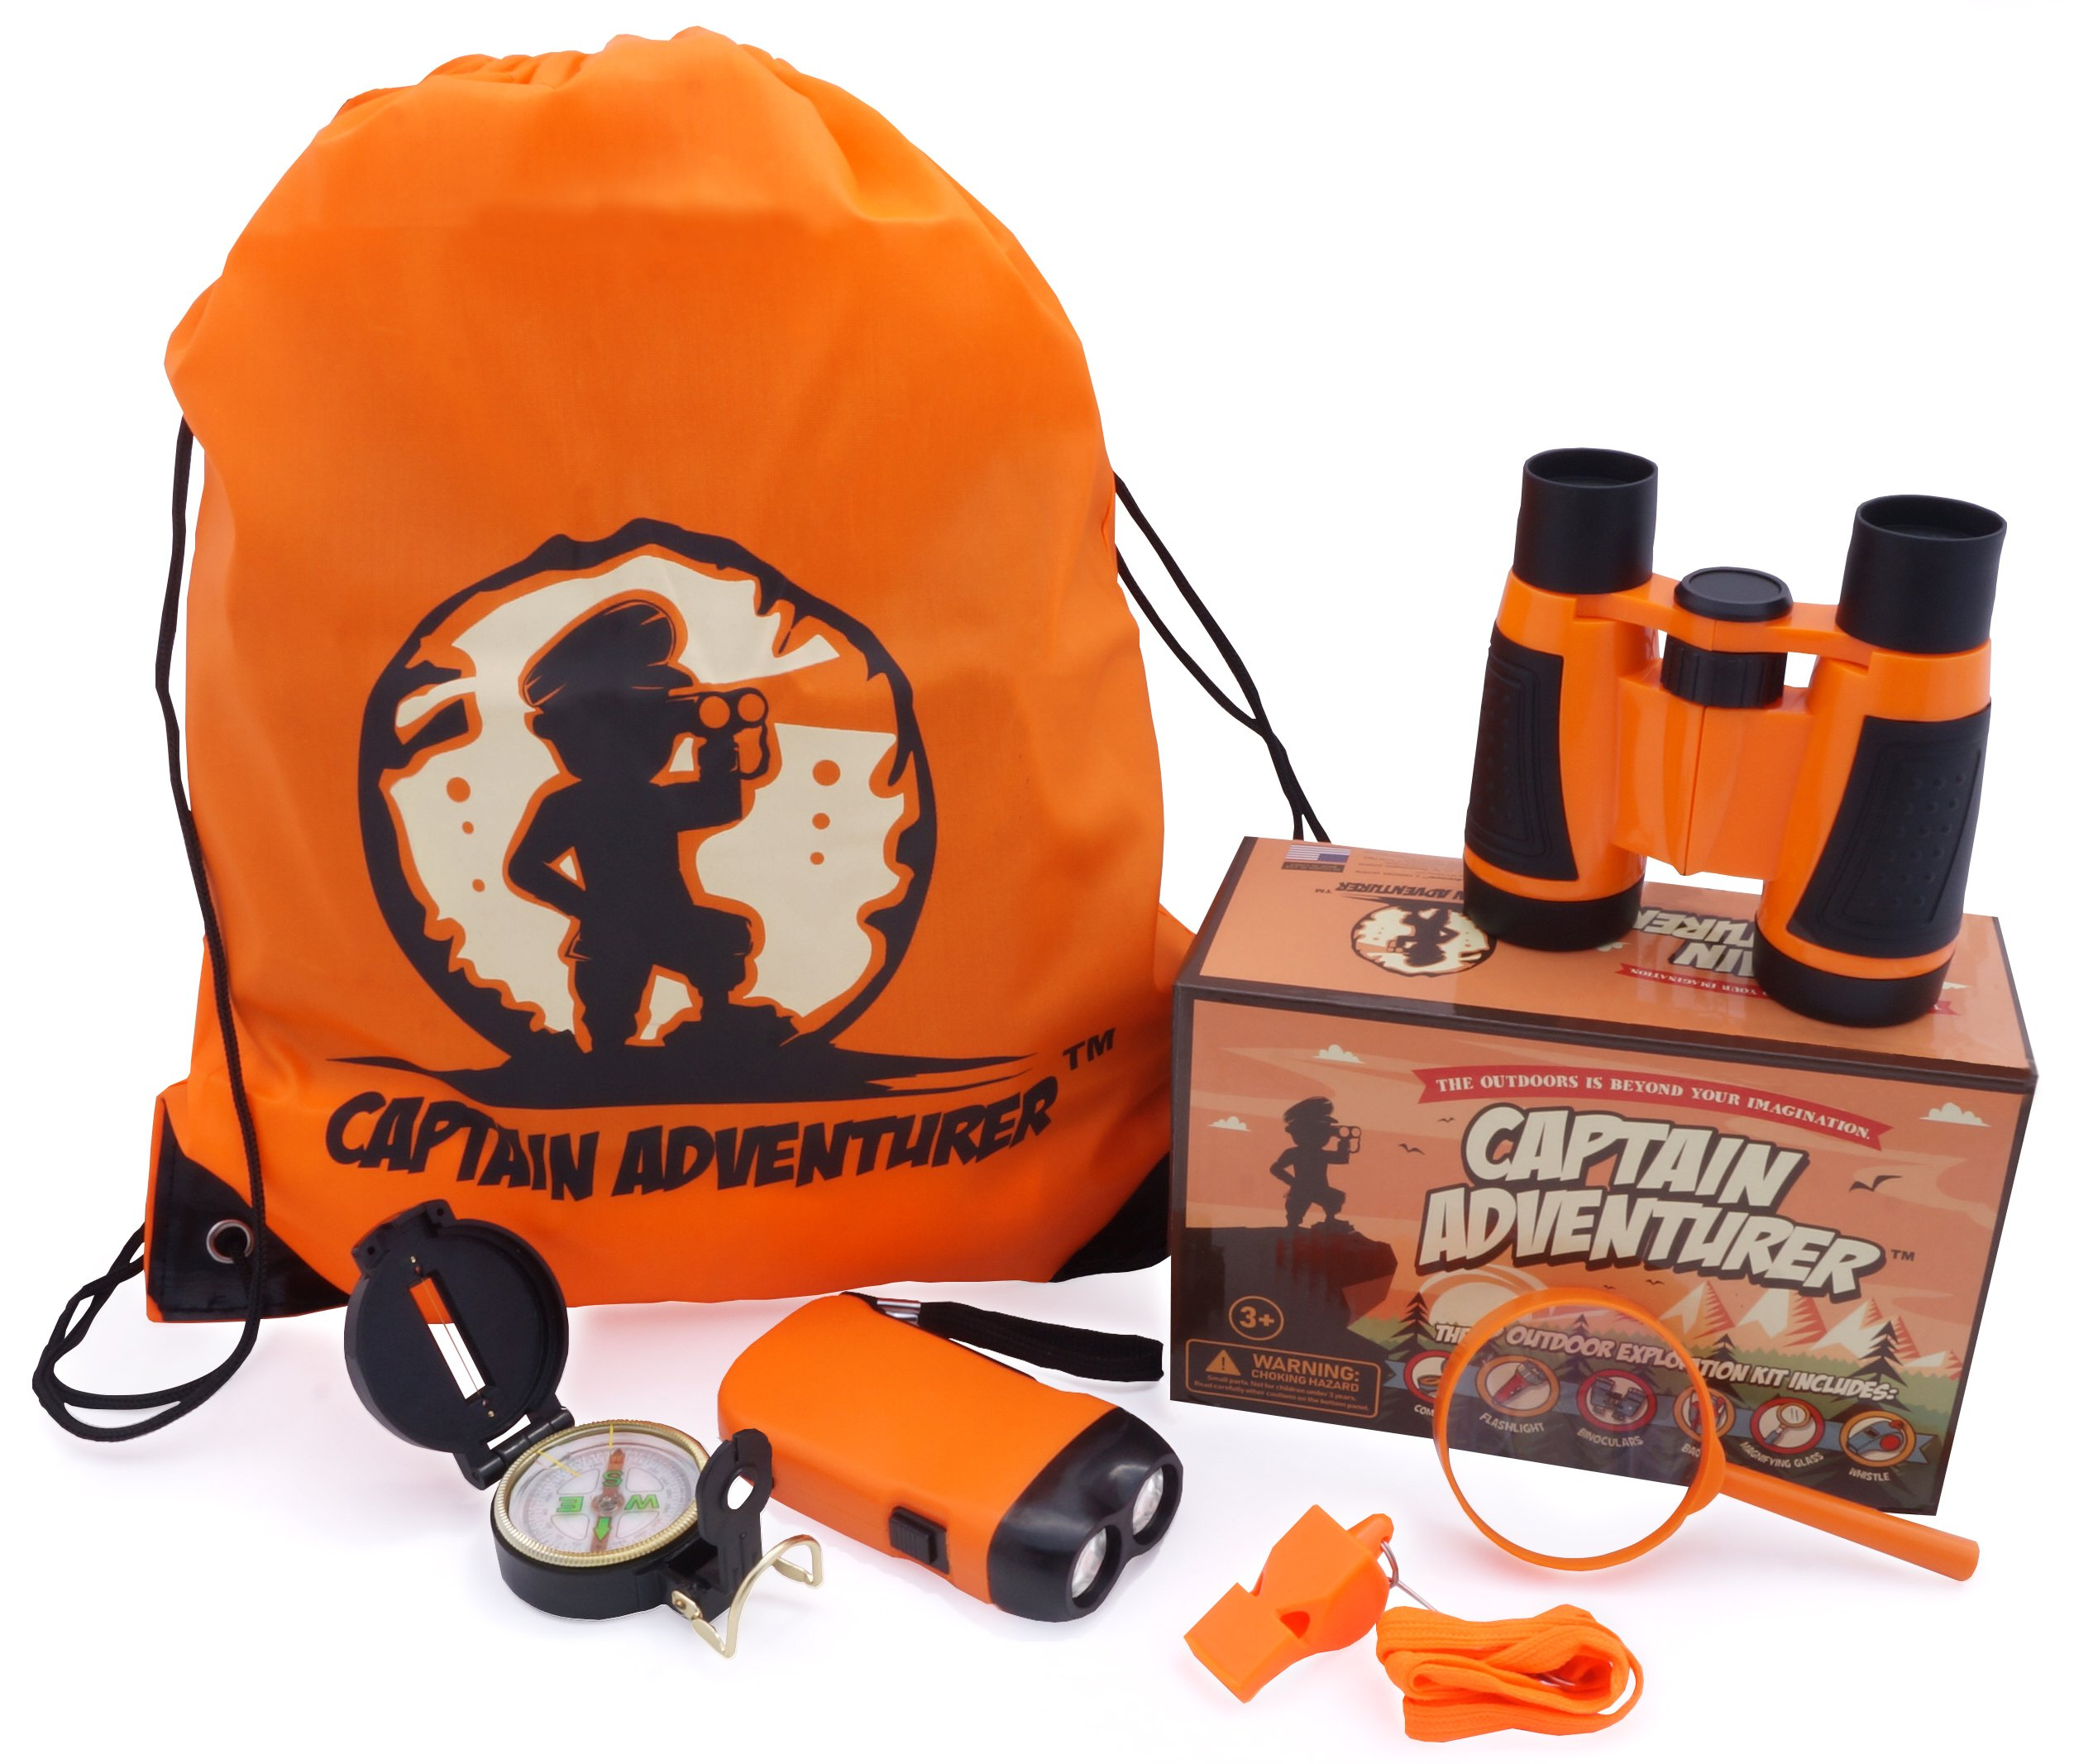 Outdoor Explorer Kit for Adventure Kids | Toys Binoculars, Flashlight, Compass, Magnifying Glass, Whistle & Backpack. Summer Kidz Gift Set for Boys & Girls, Camping, Hiking, Educational & Pretend Play by Captain Adventurer